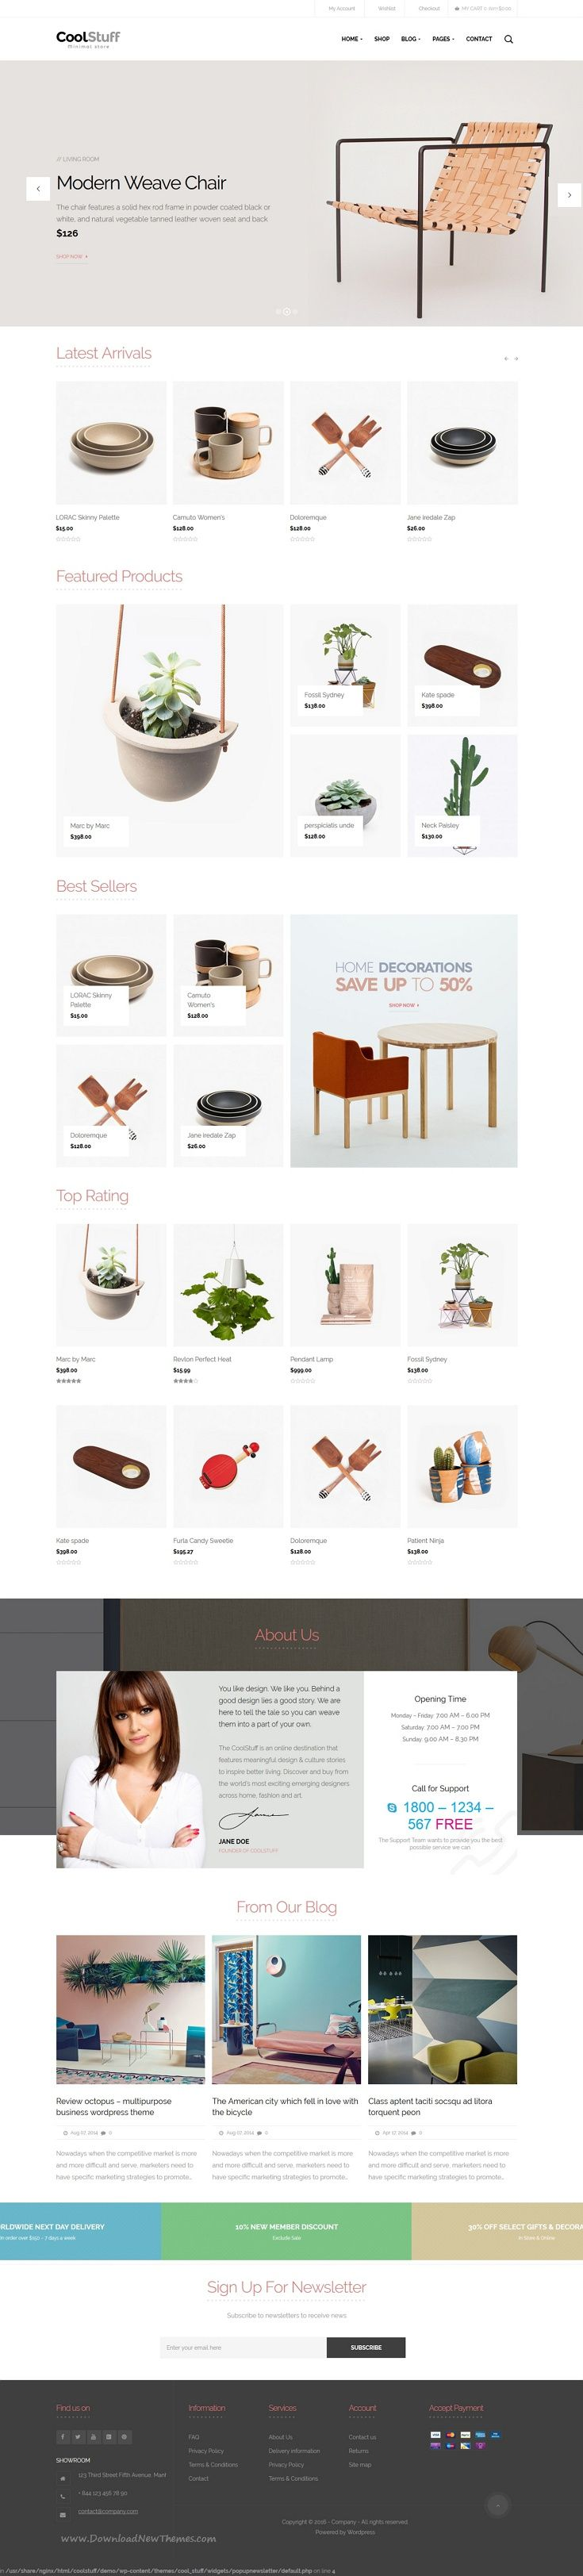 25 best ecommerce wordpress theme ideas on pinterest website